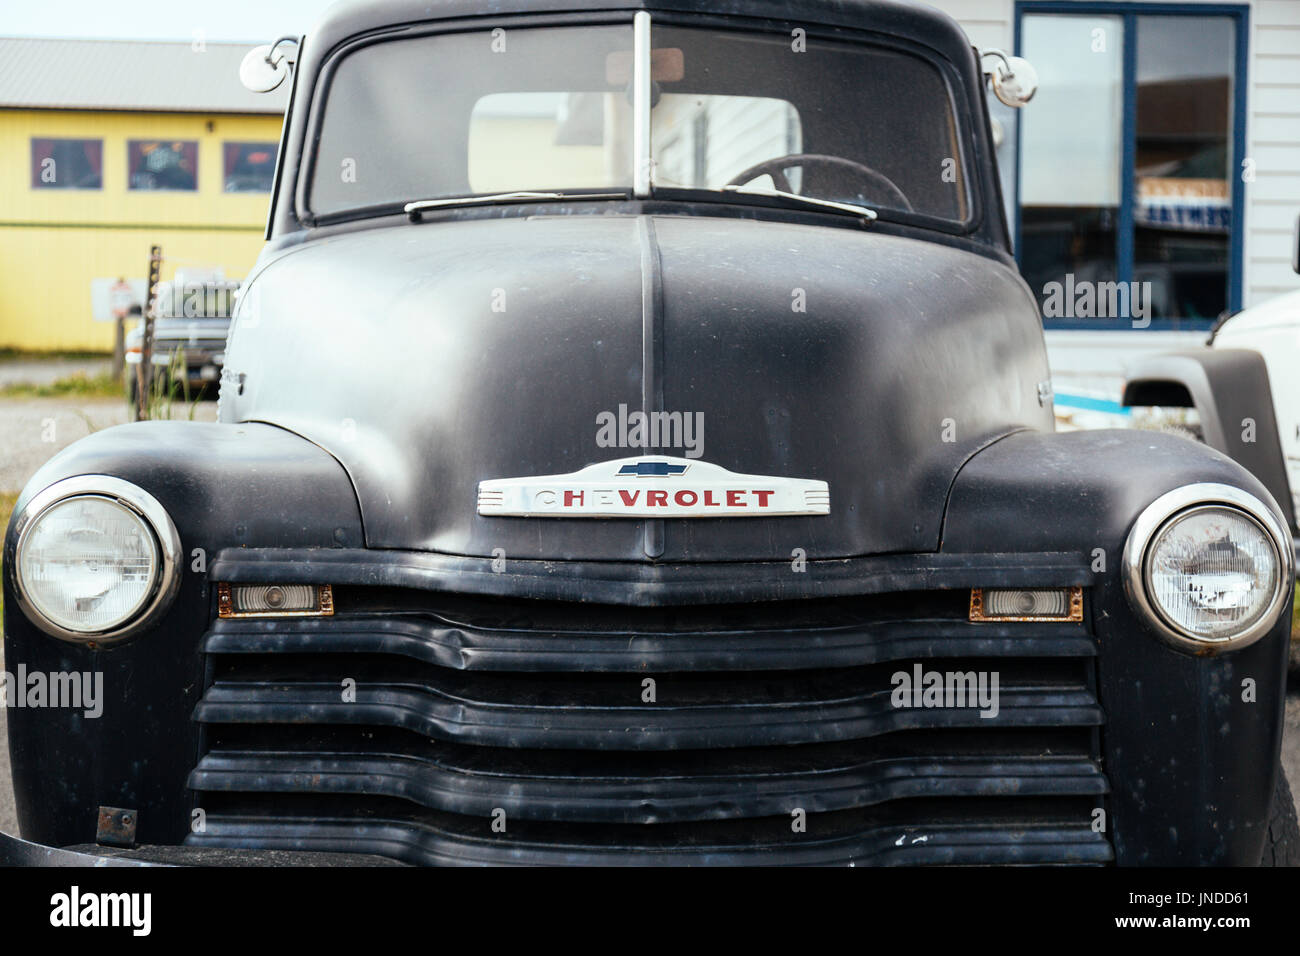 oldtimer car homer spit homer kenai peninsula alaska usa stock photo alamy alamy